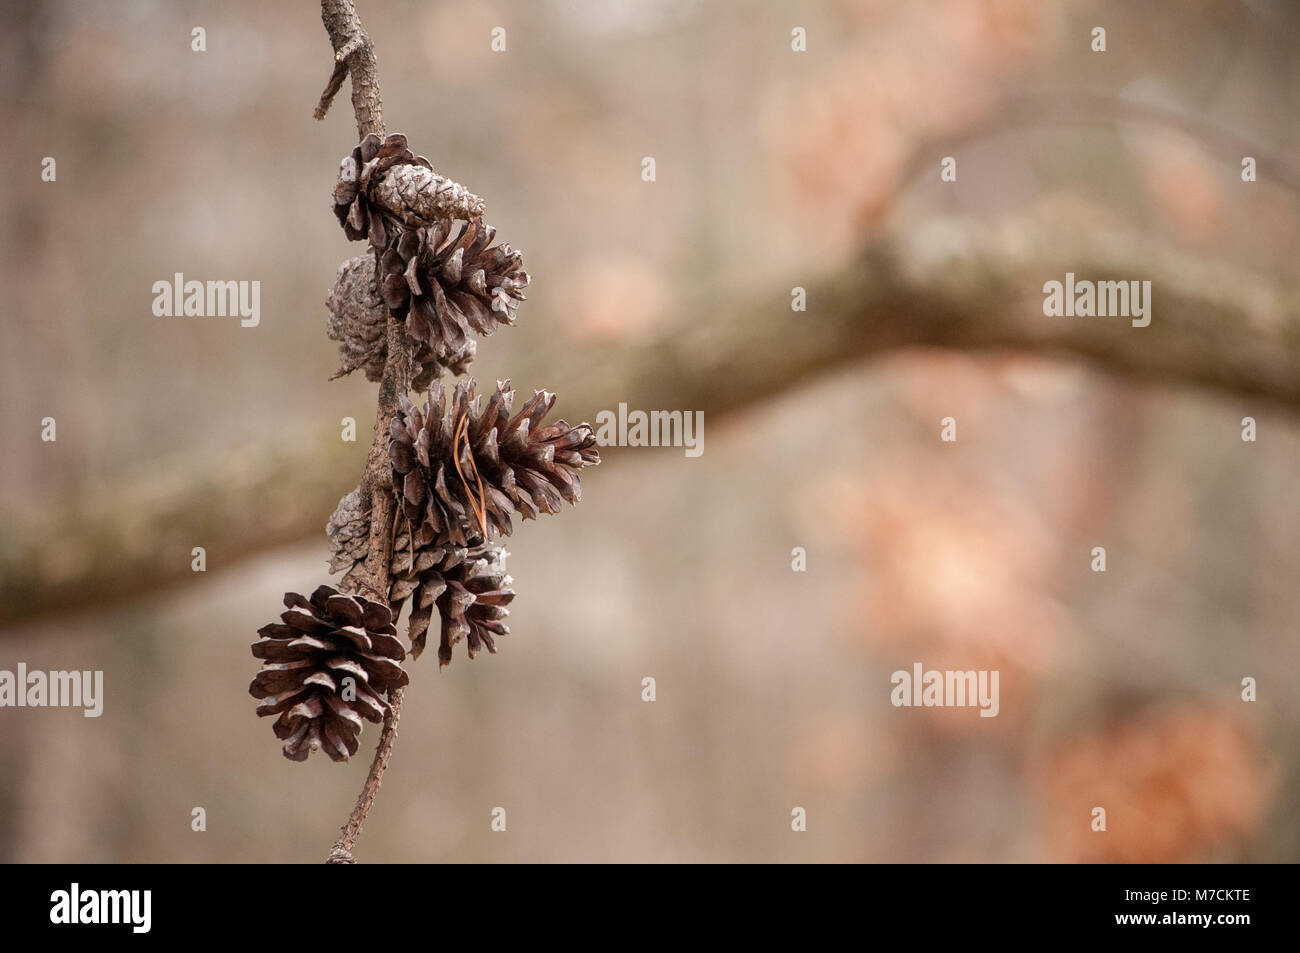 A small group of pinecones hang from a bare branch as Winter fades and Spring approaches. - Stock Image